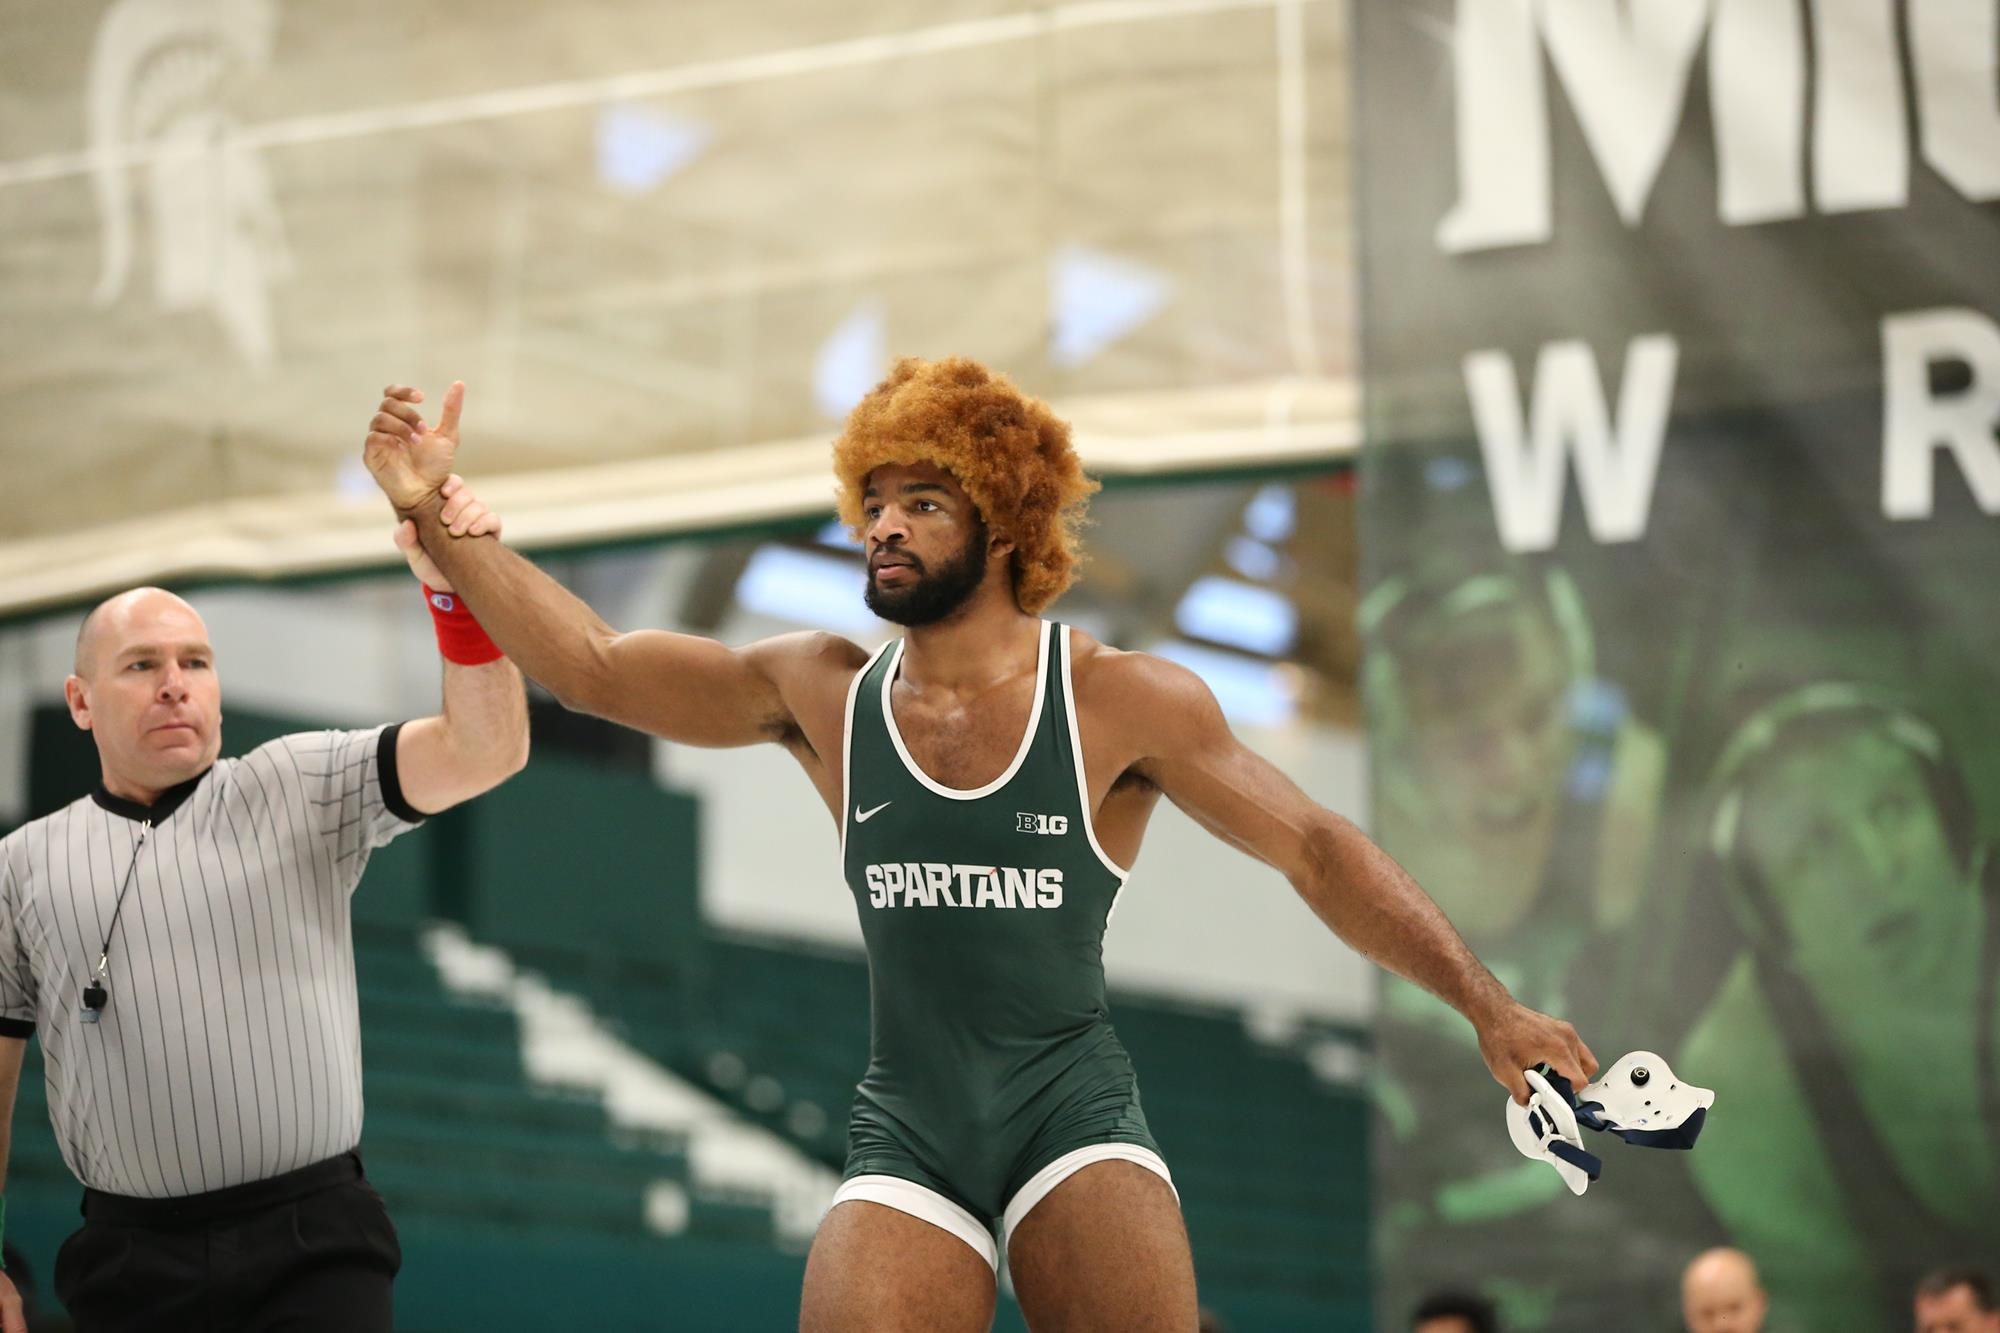 Cameron Caffey - Wrestling - Michigan State University Athletics